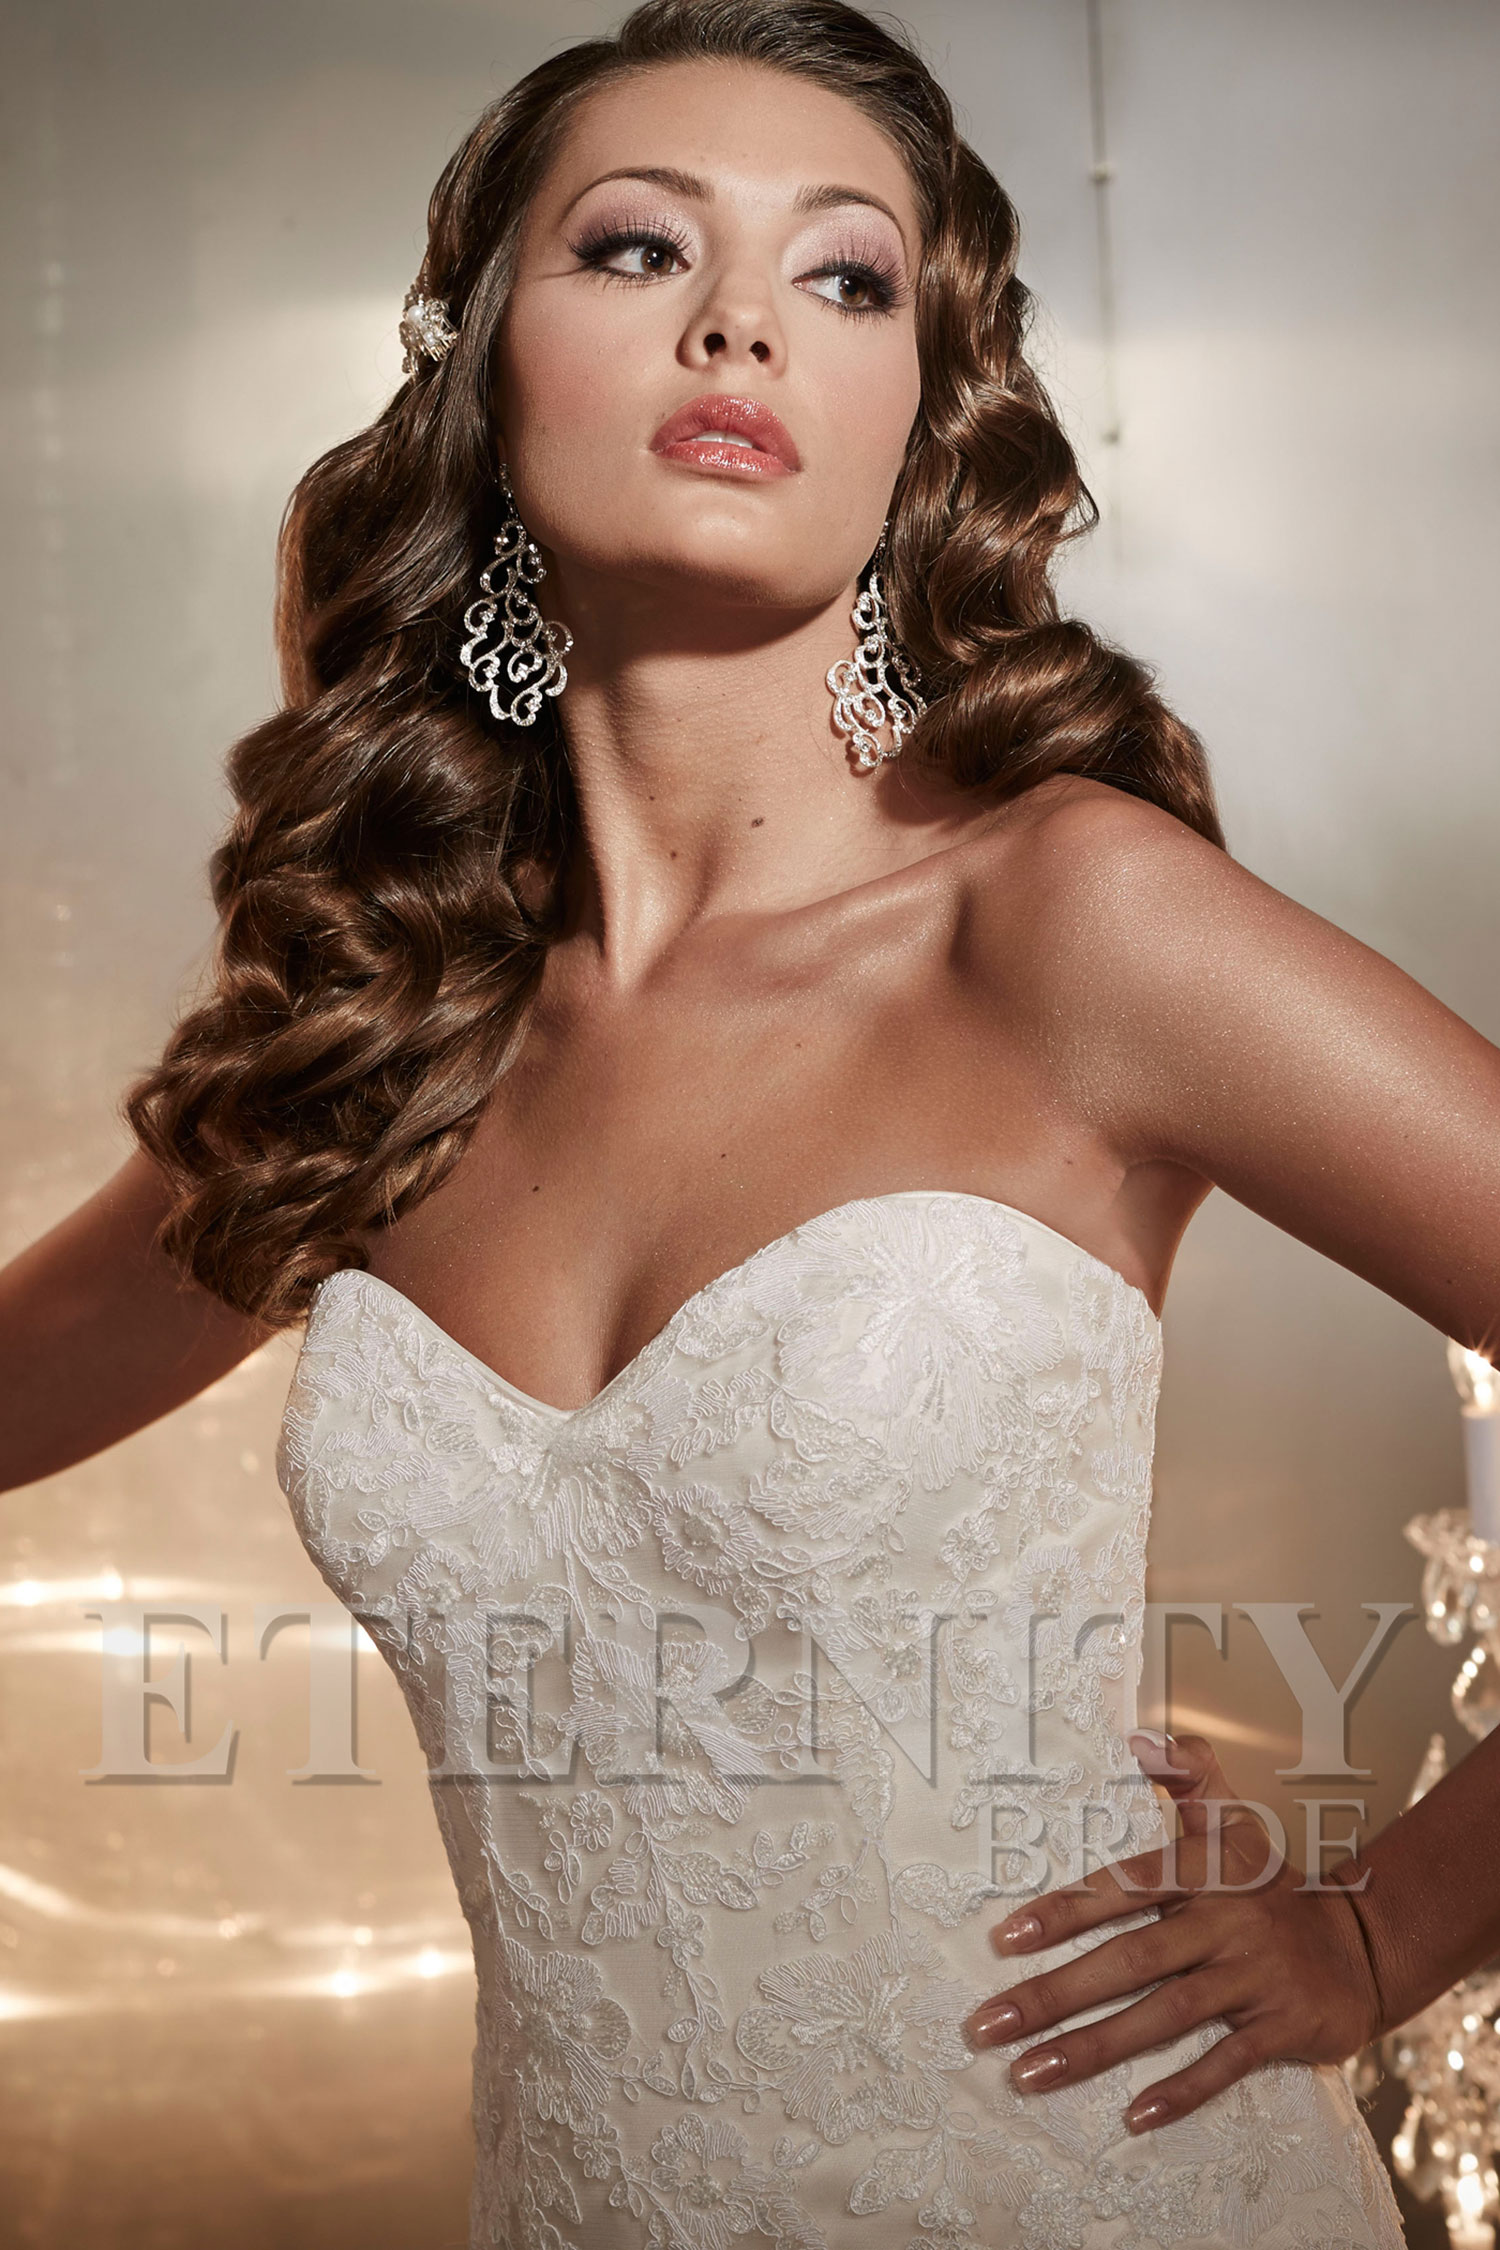 Eternity Bride D5225